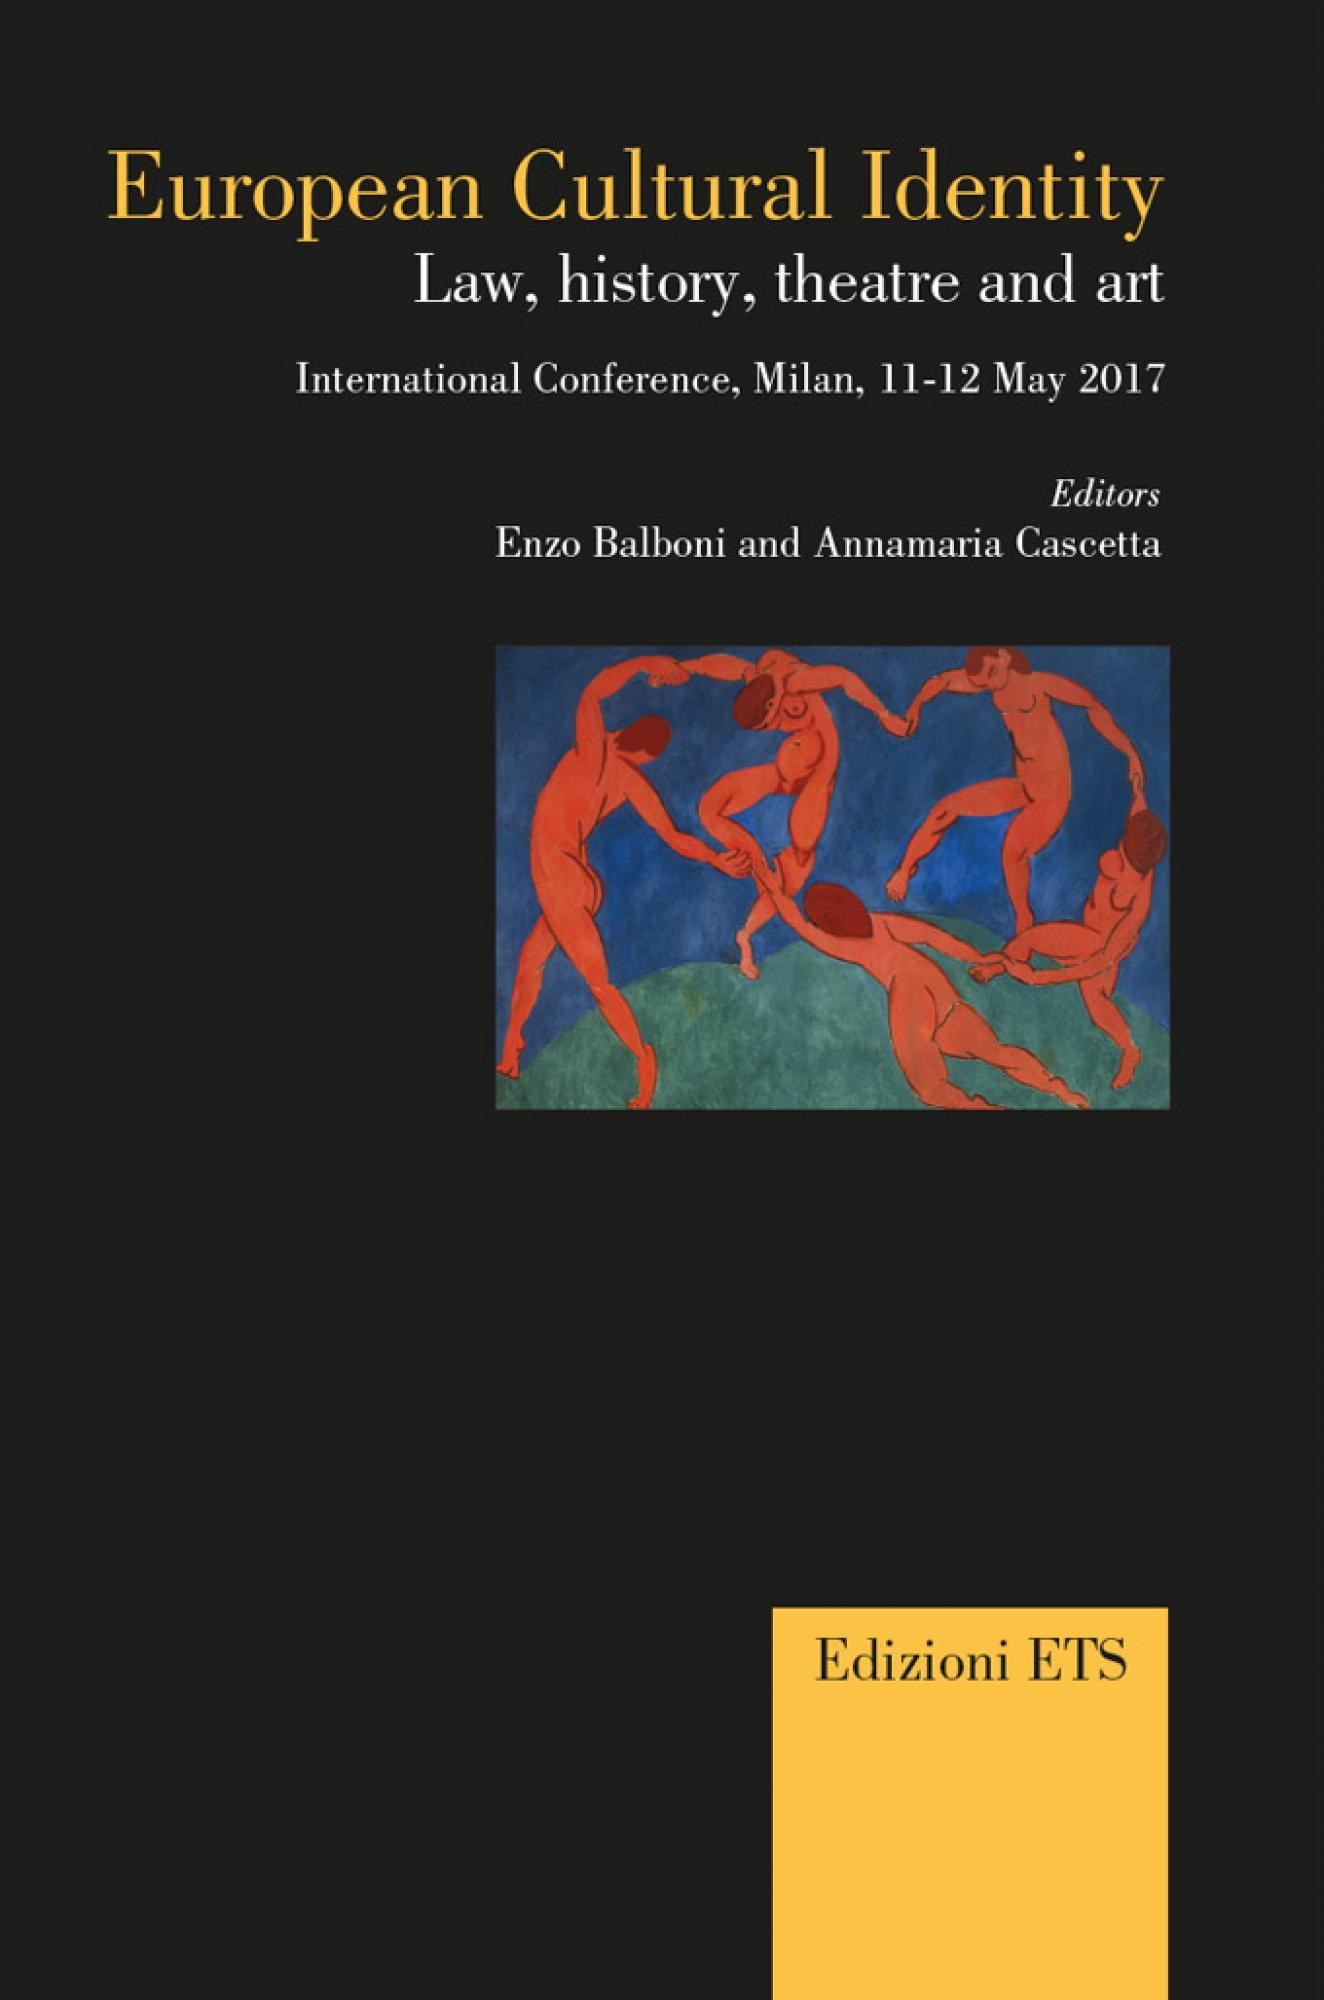 European Cultural Identity.